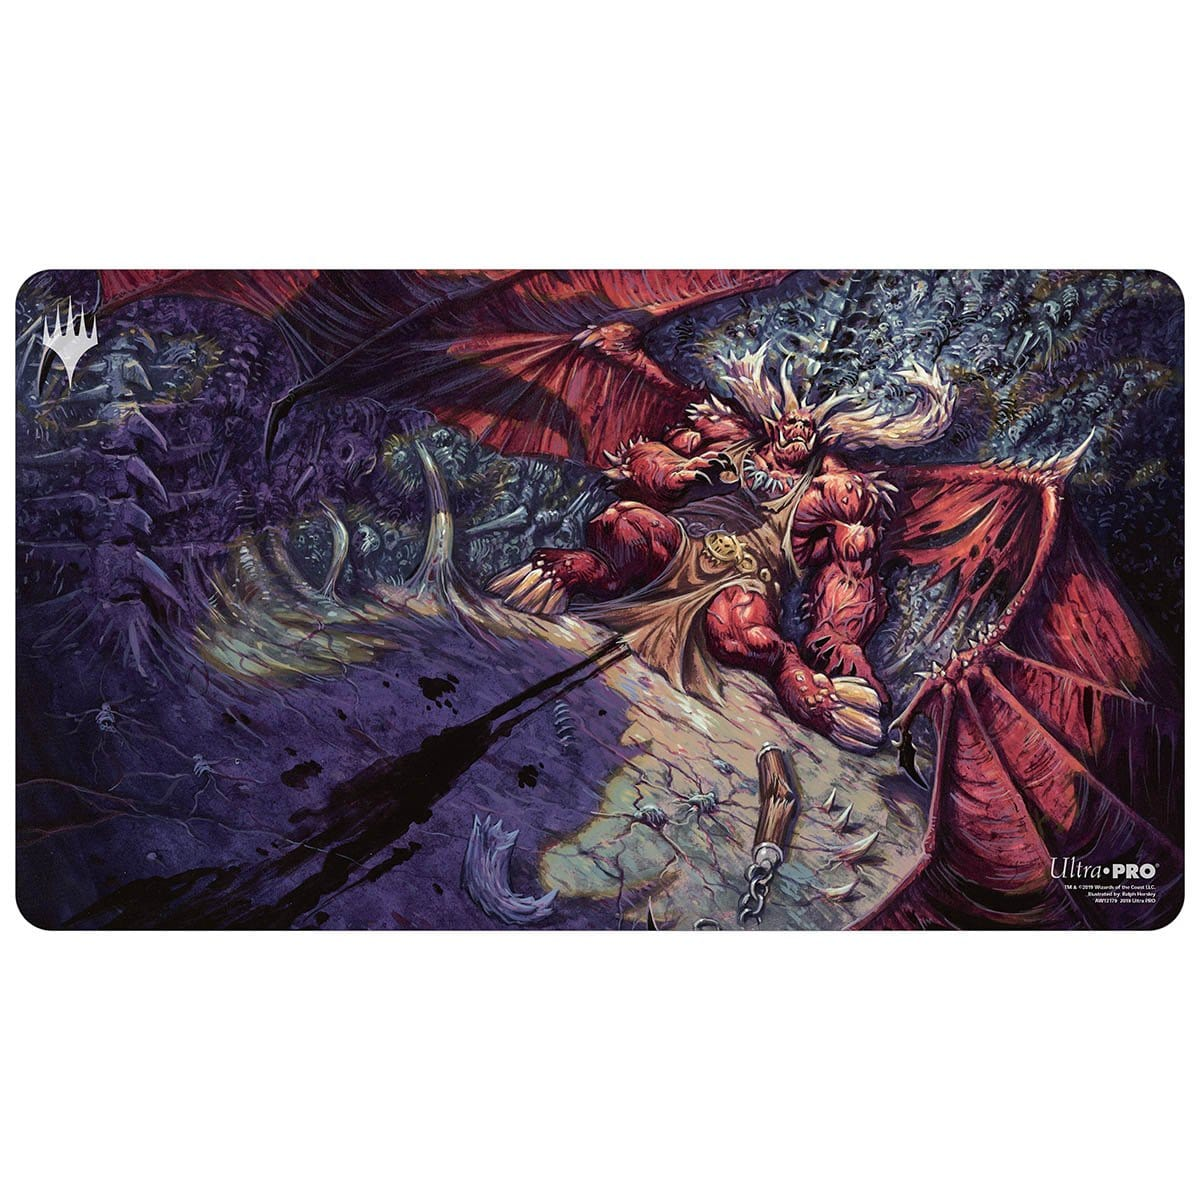 Cruel Ultimatum Playmat - Playmat - Original Magic Art - Accessories for Magic the Gathering and other card games